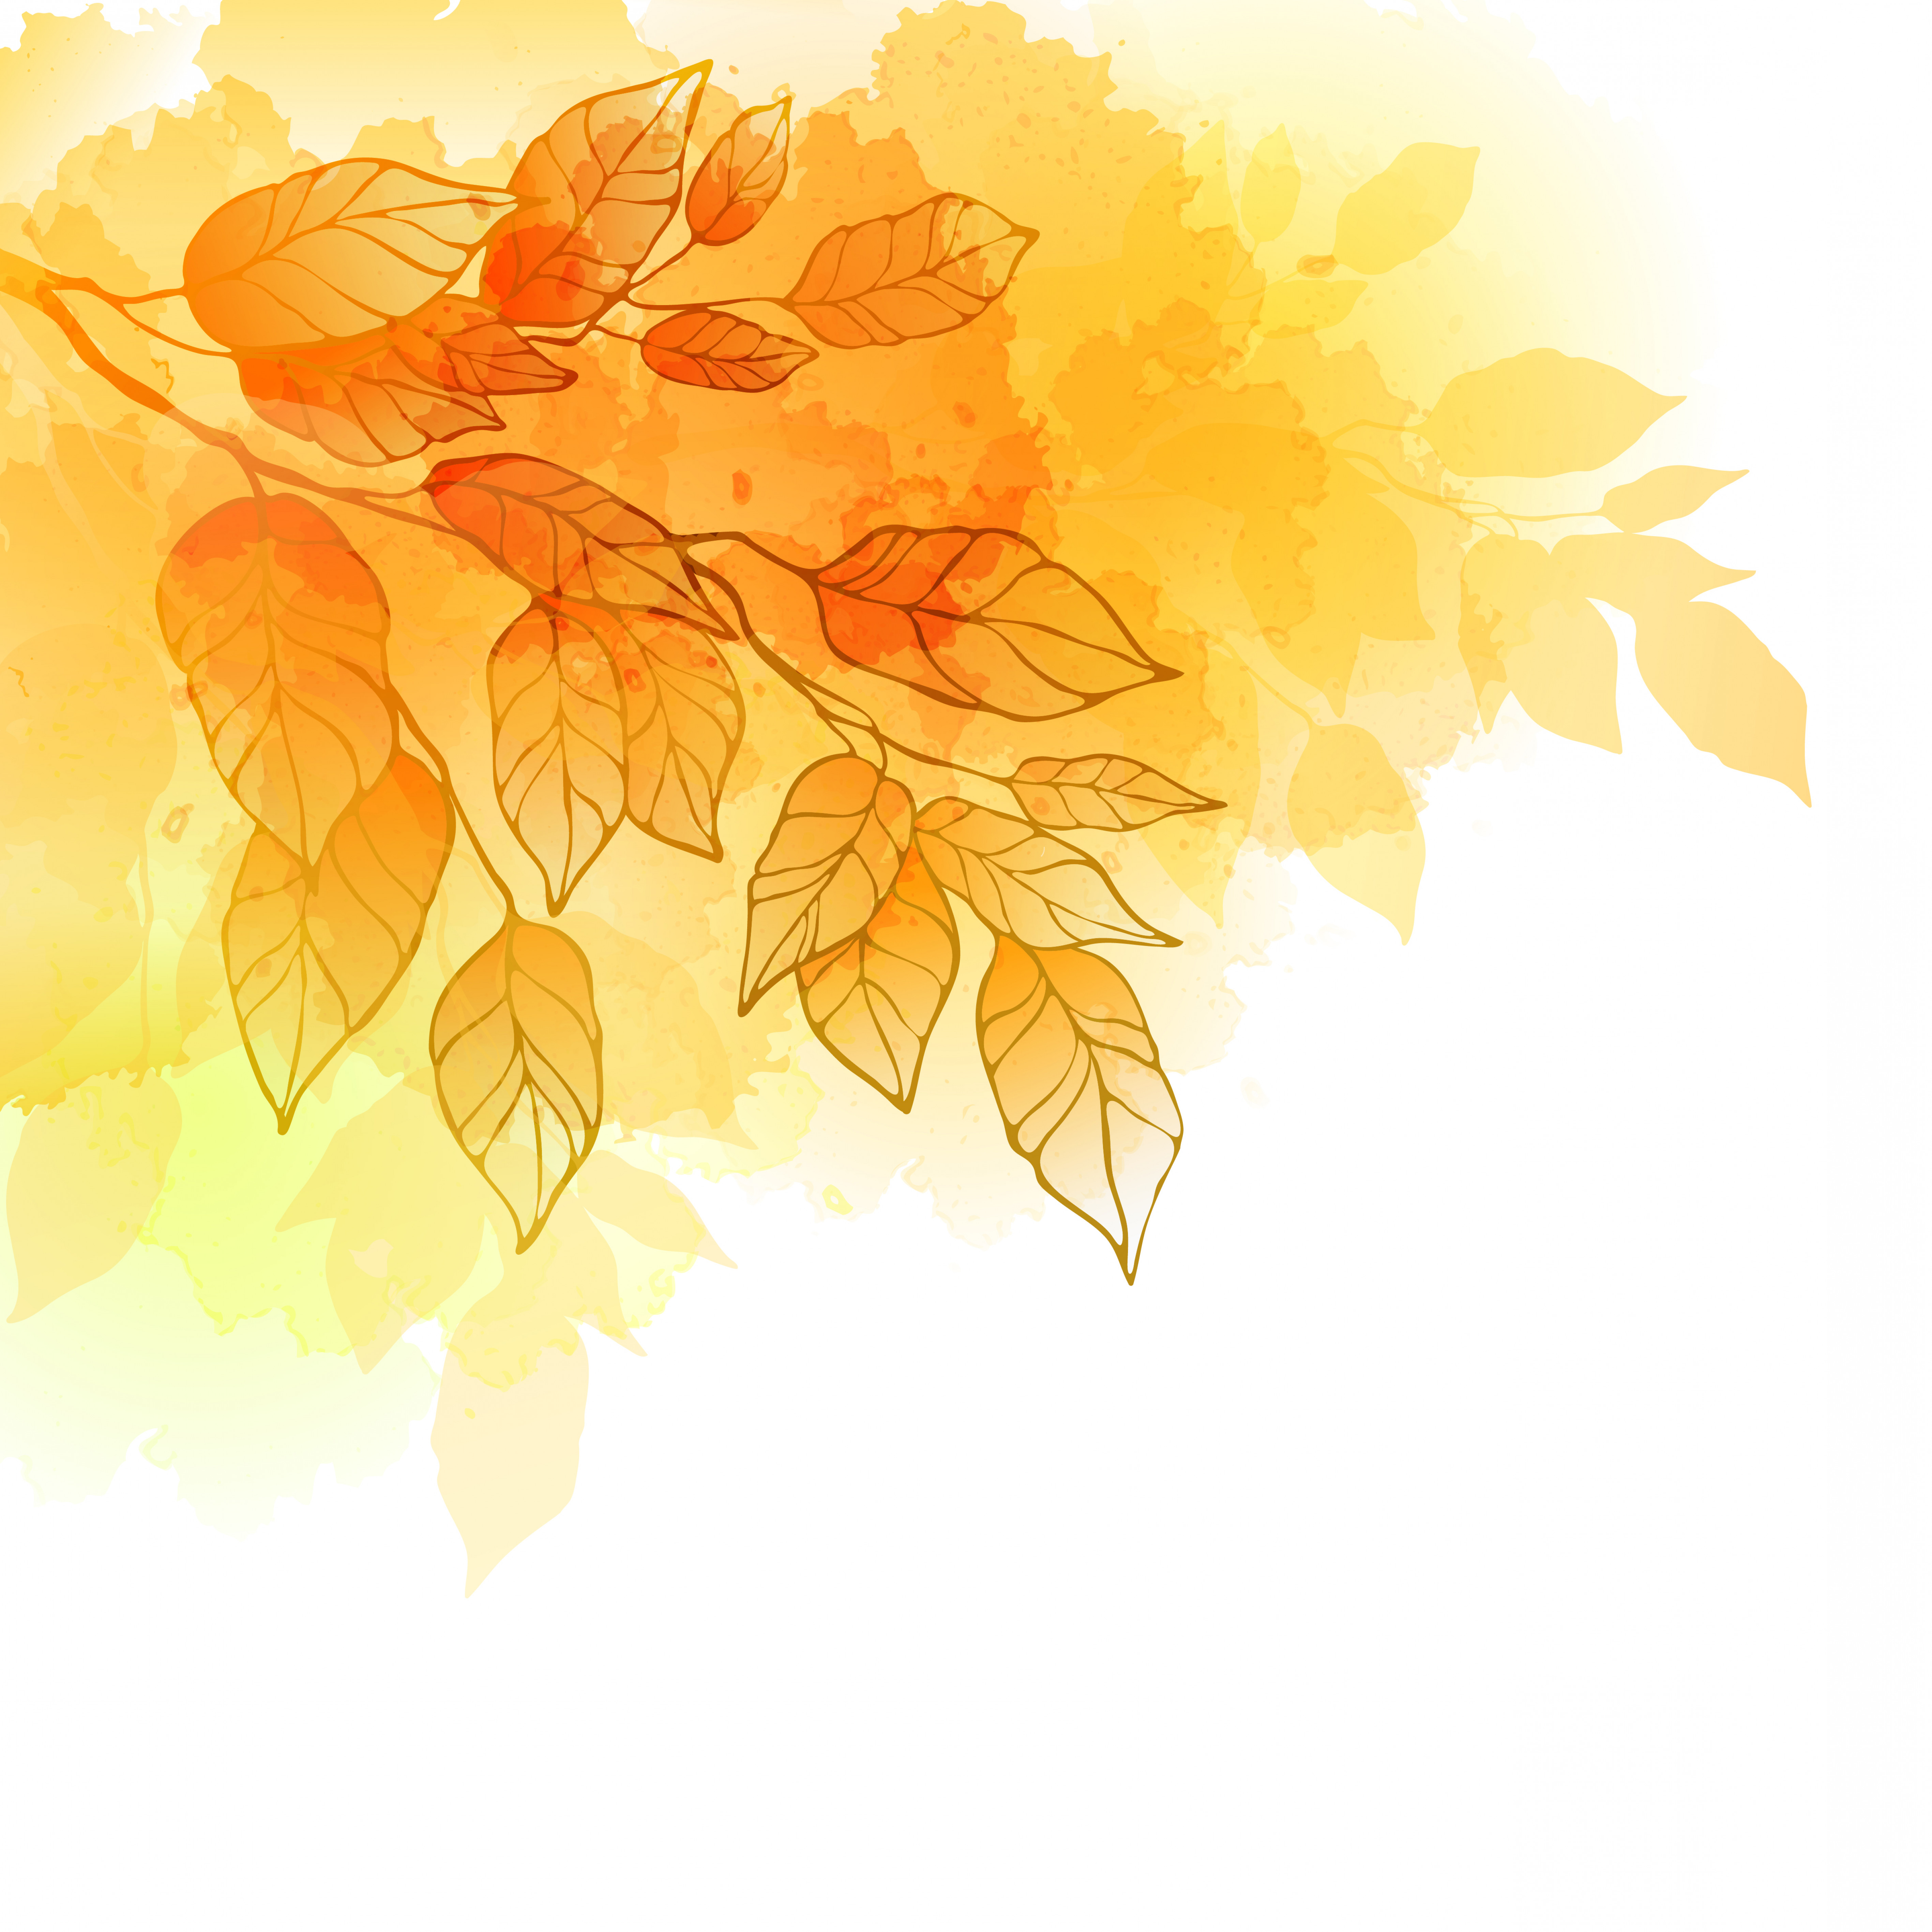 Free Vector Backgrounds Illustrator Free Download: Golden Autumn Leaves Background Vector Material